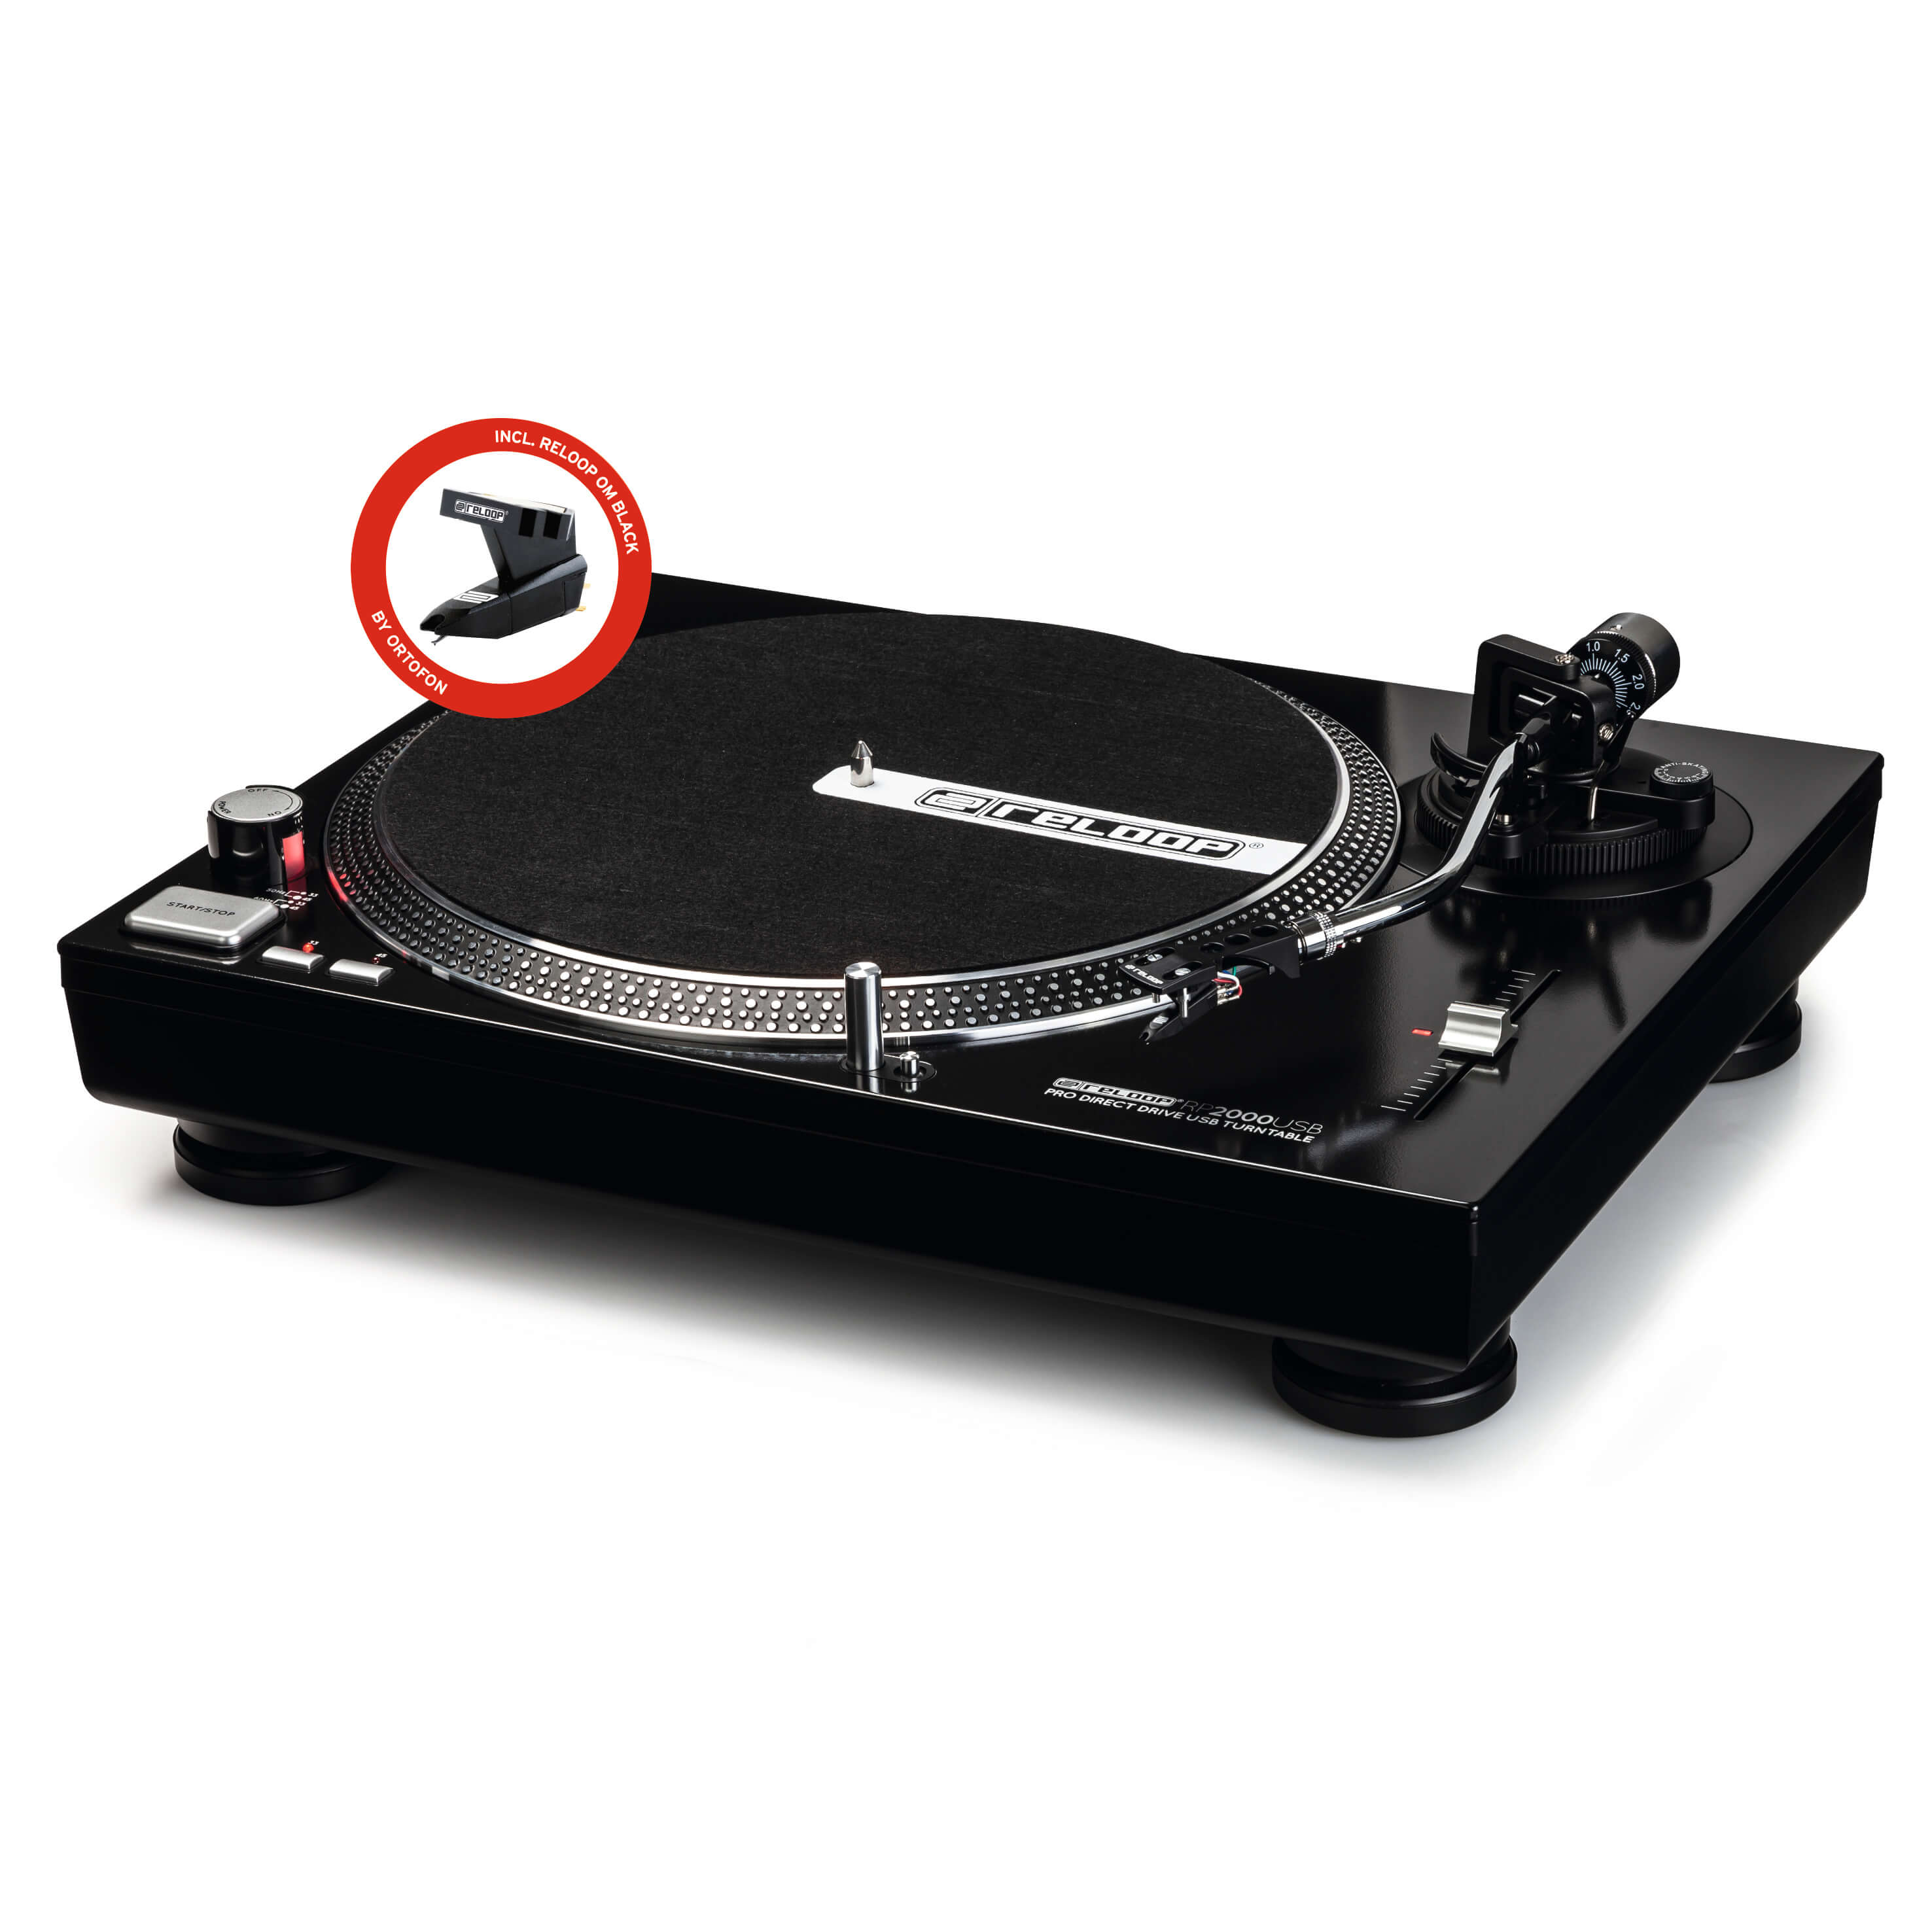 Reloop RP-2000 USB Direct Drive DJ Turntable With USB